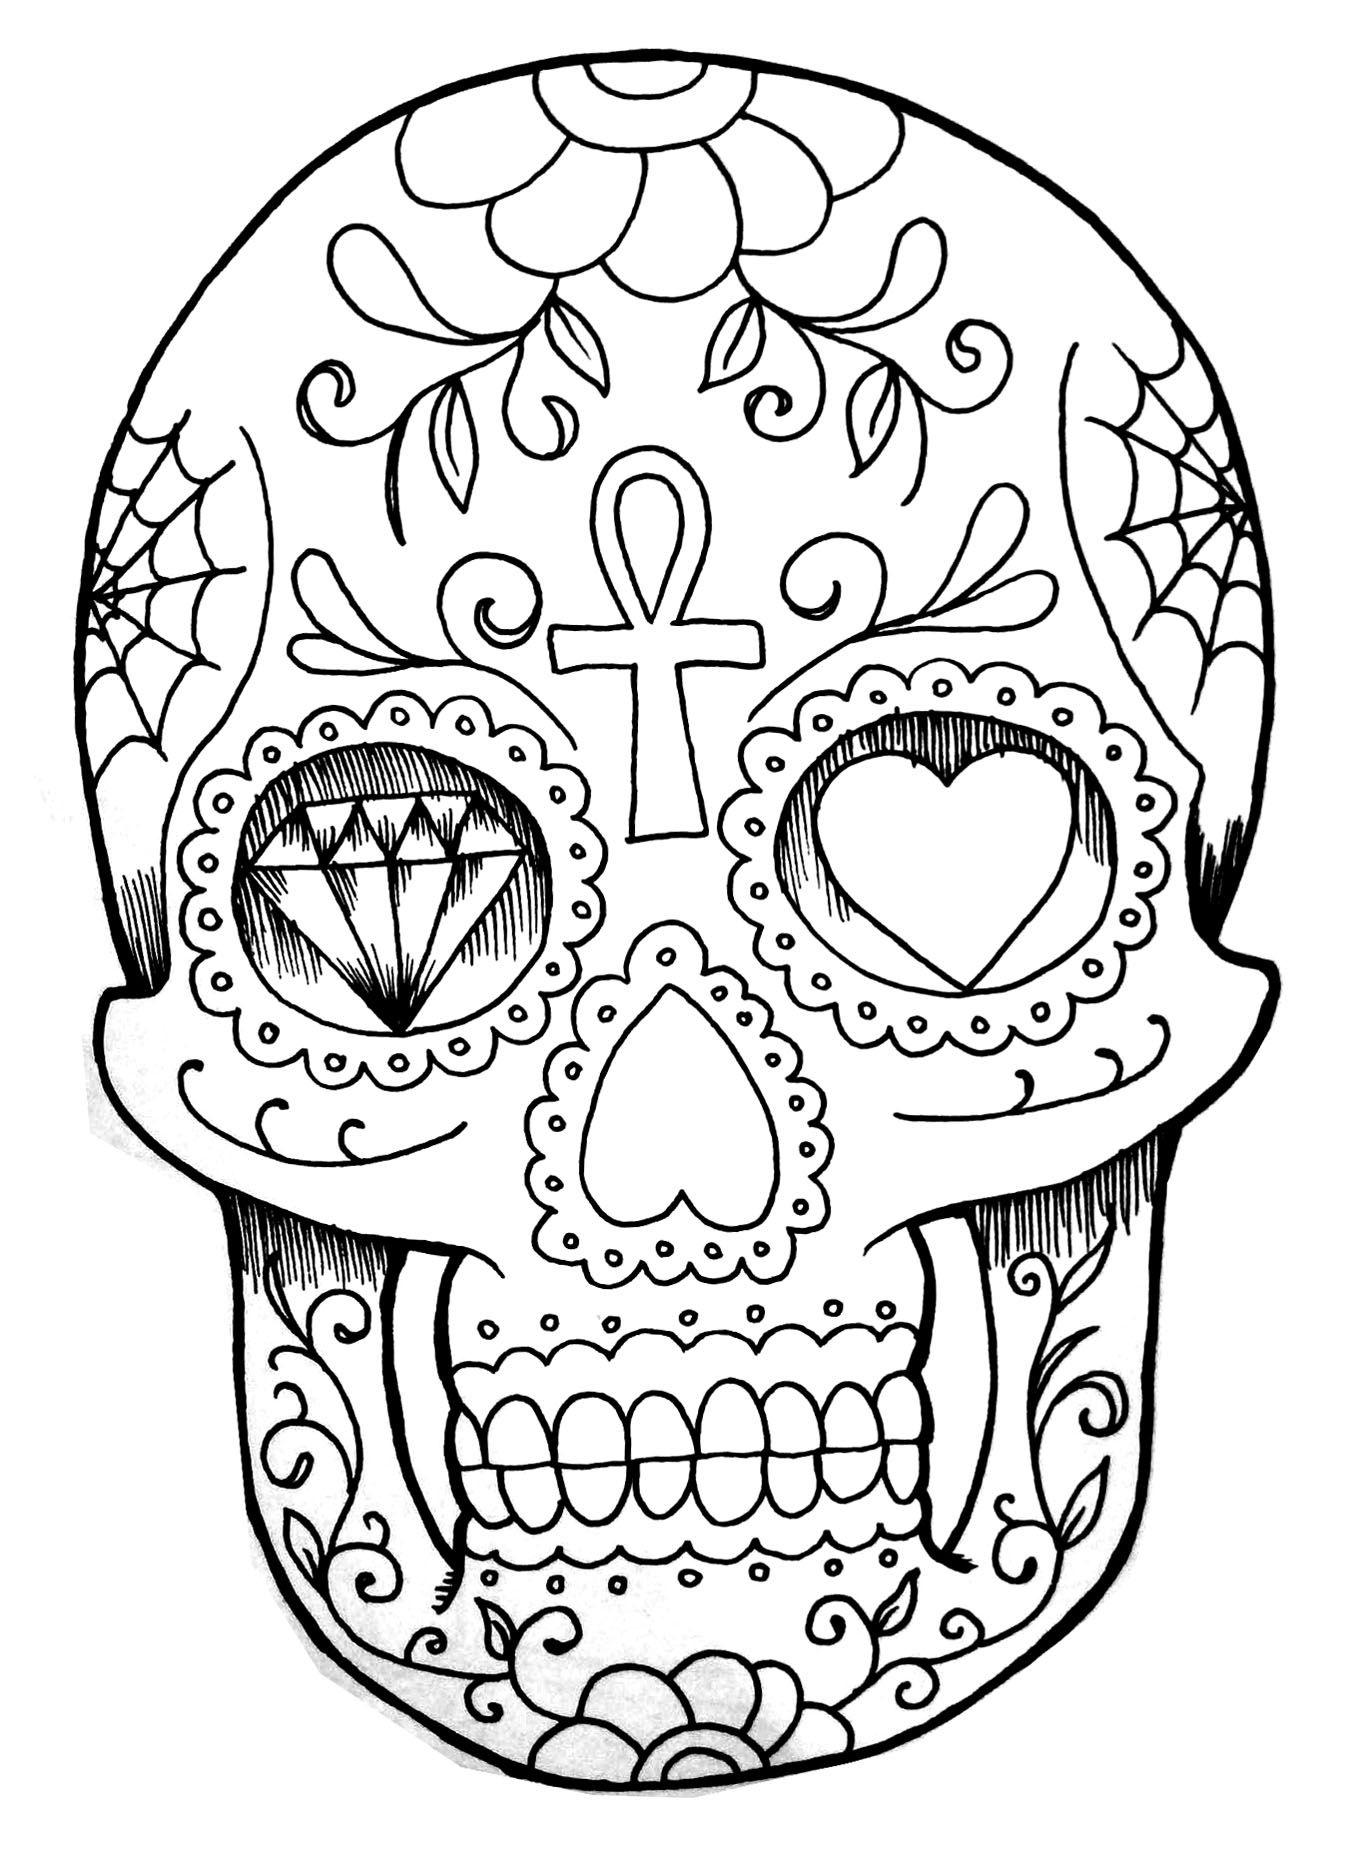 Skull coloring page halloween galerie de coloriages gratuits coloriage tatoo crane coloriage - Coloriage de tatouage ...